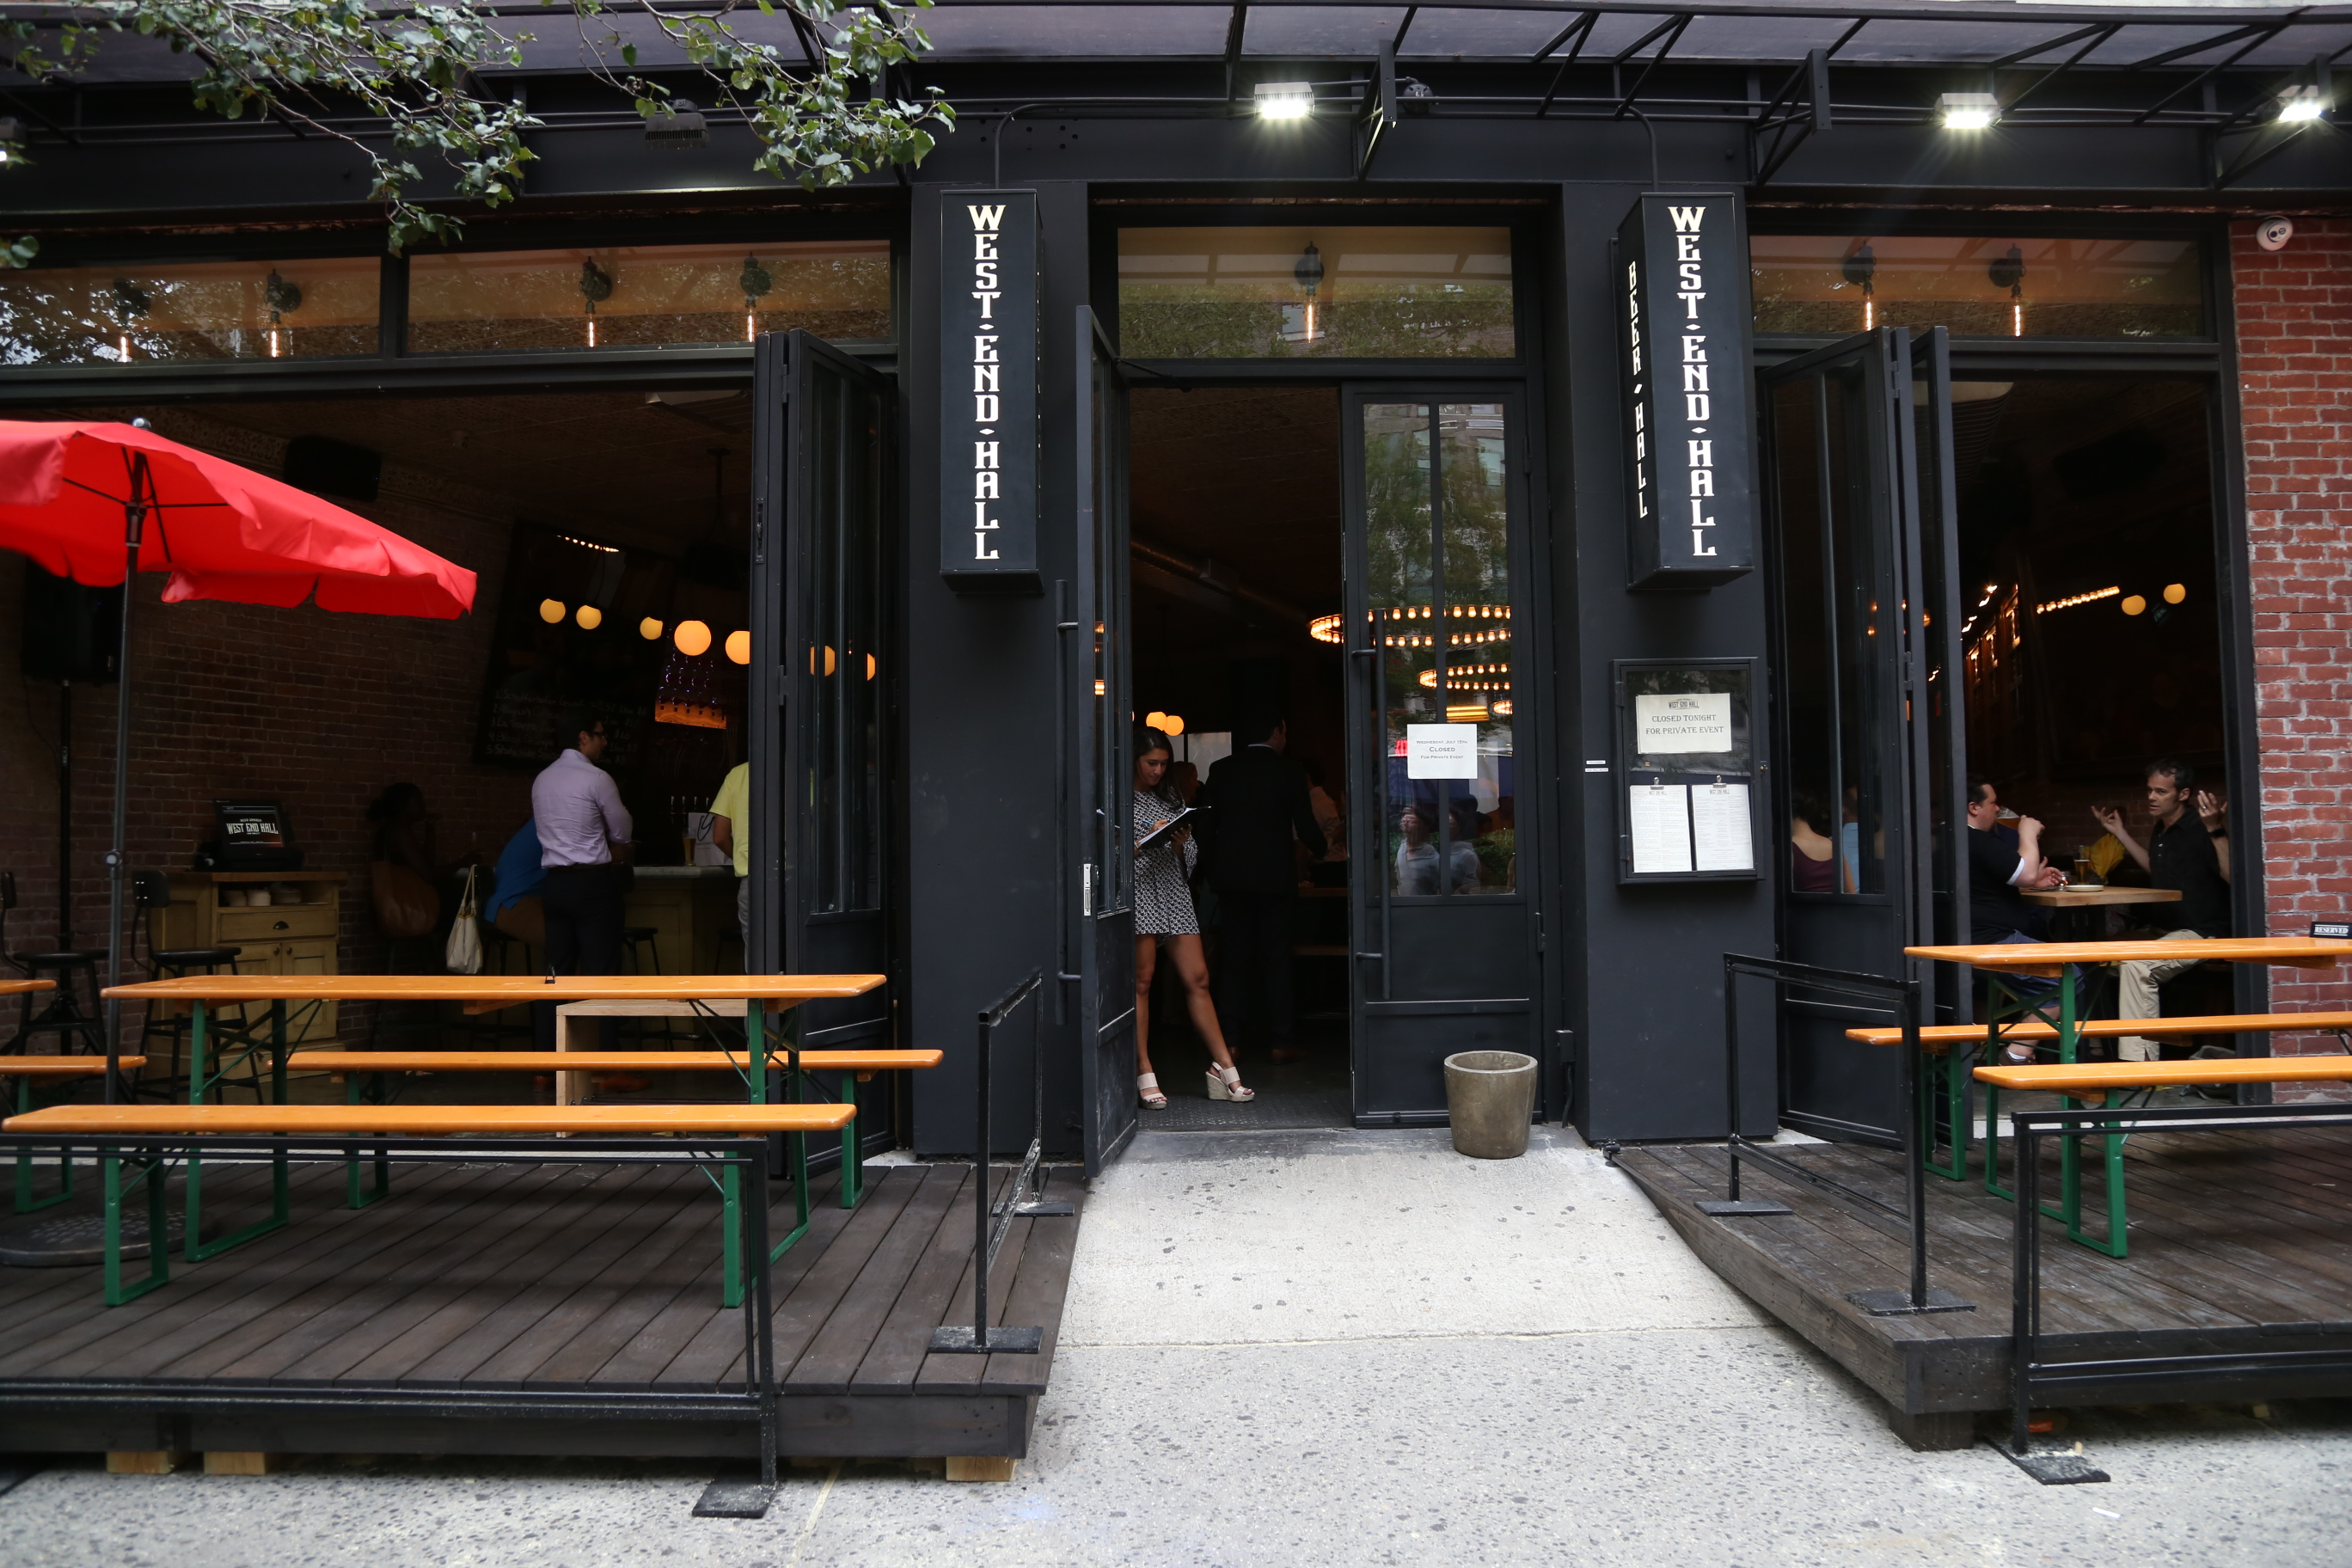 West End Hall Brings A Beer Garden To Uws Manhattan With A Twist